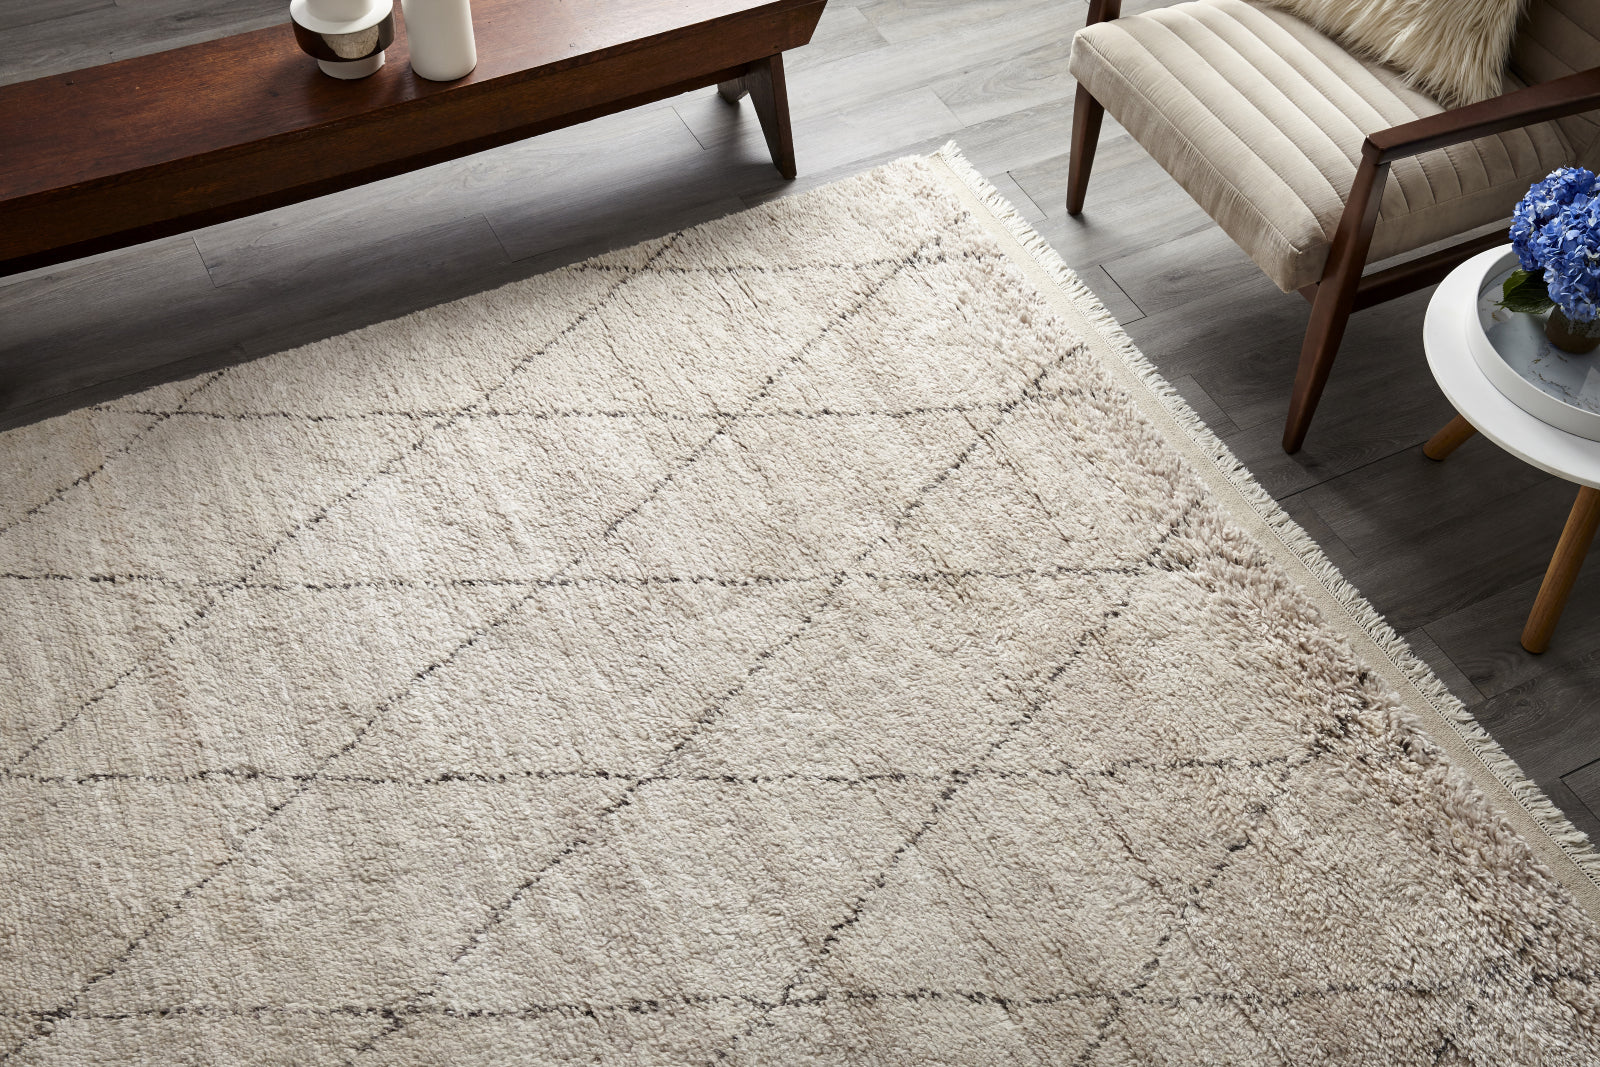 Solo Rugs Shaggy Moroccan S1121 Linen Area Rug main image